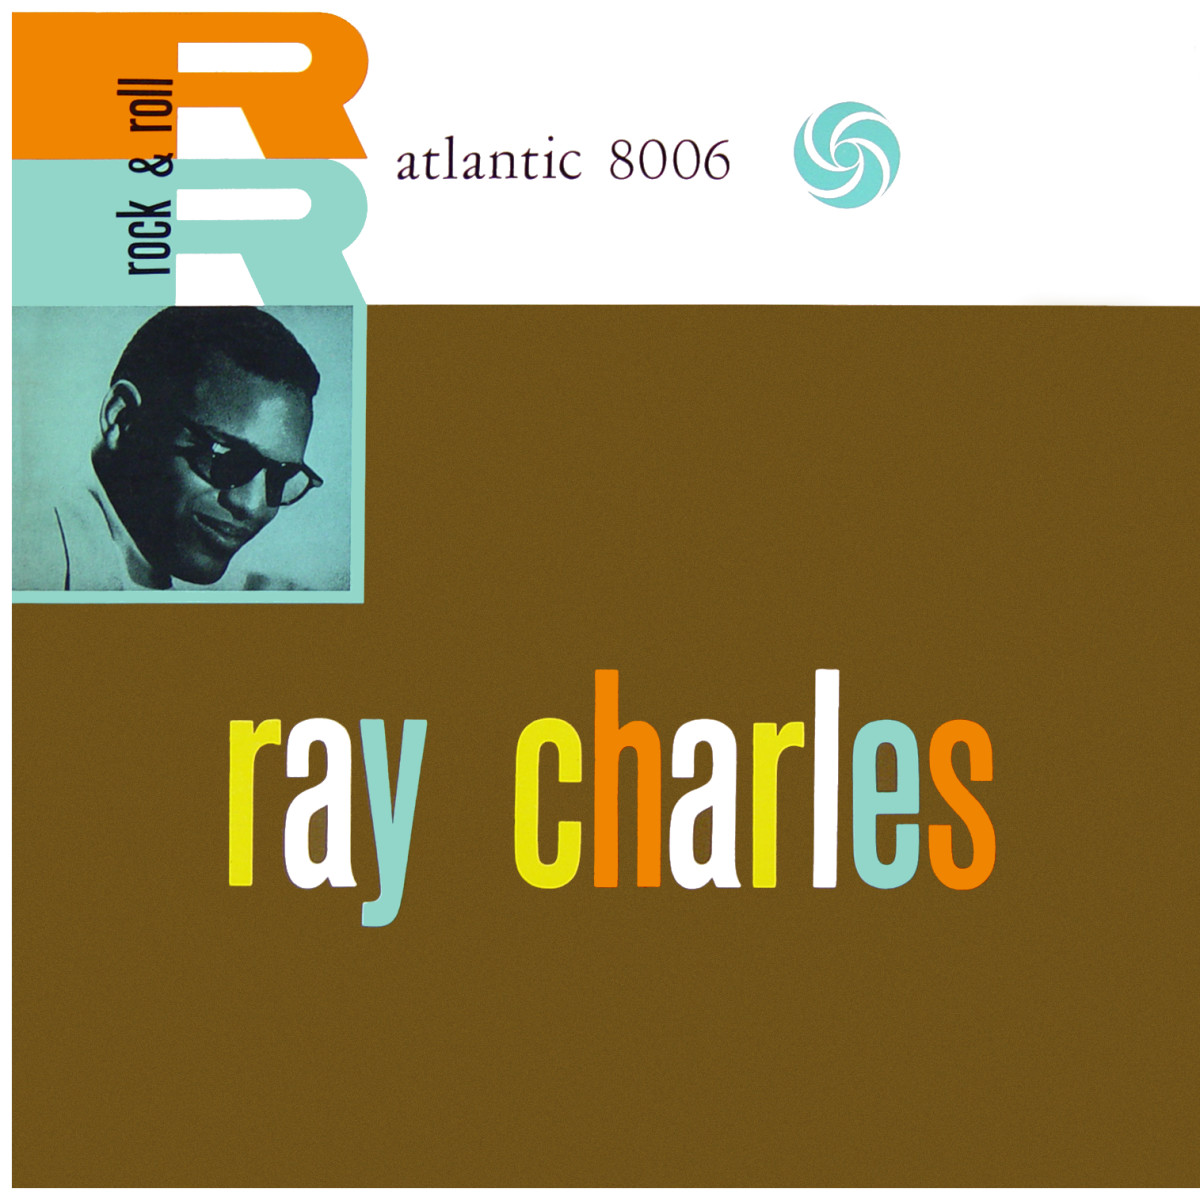 "Ray Charles ""Ray Charles"" Atlantic Records 8006 12"" LP Vinyl Record (1980 re-issue) US Pressing"